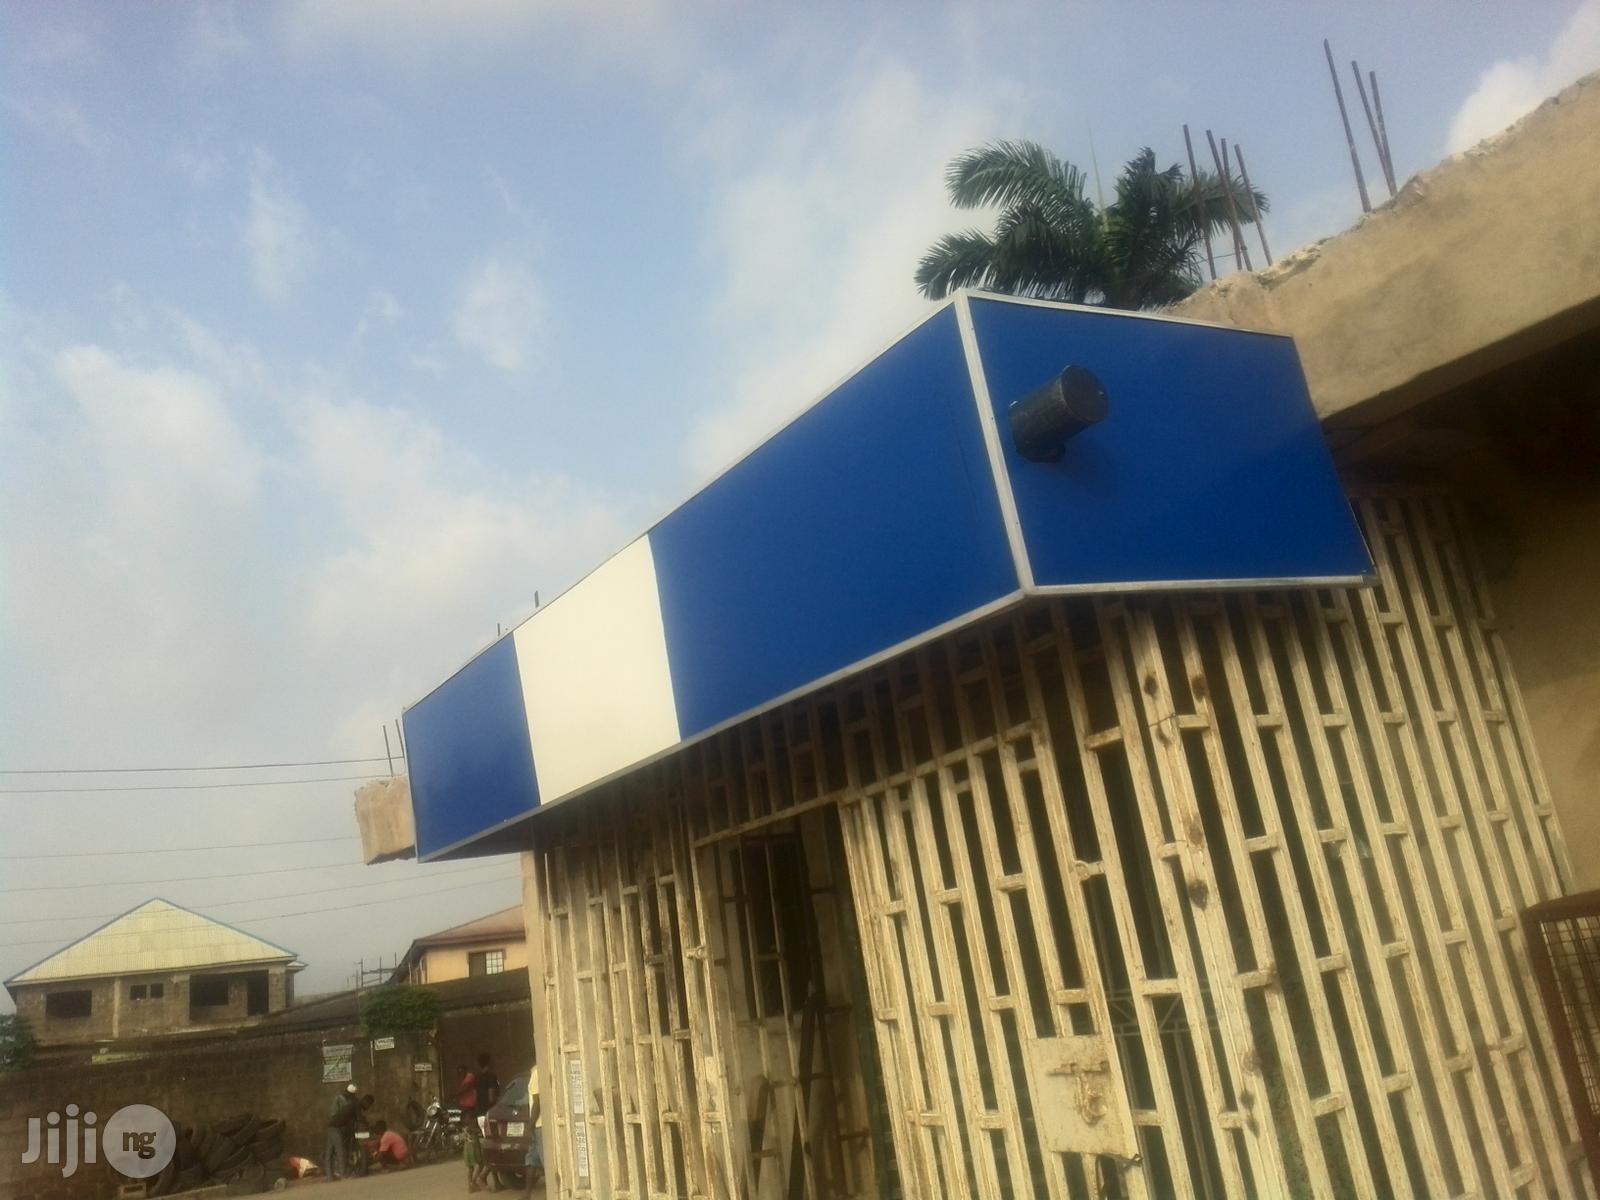 Suspended Ceiling Of All Types Pvc, Pop Ceiling Panels, Fibre Panels Etc | Building & Trades Services for sale in Alimosho, Lagos State, Nigeria